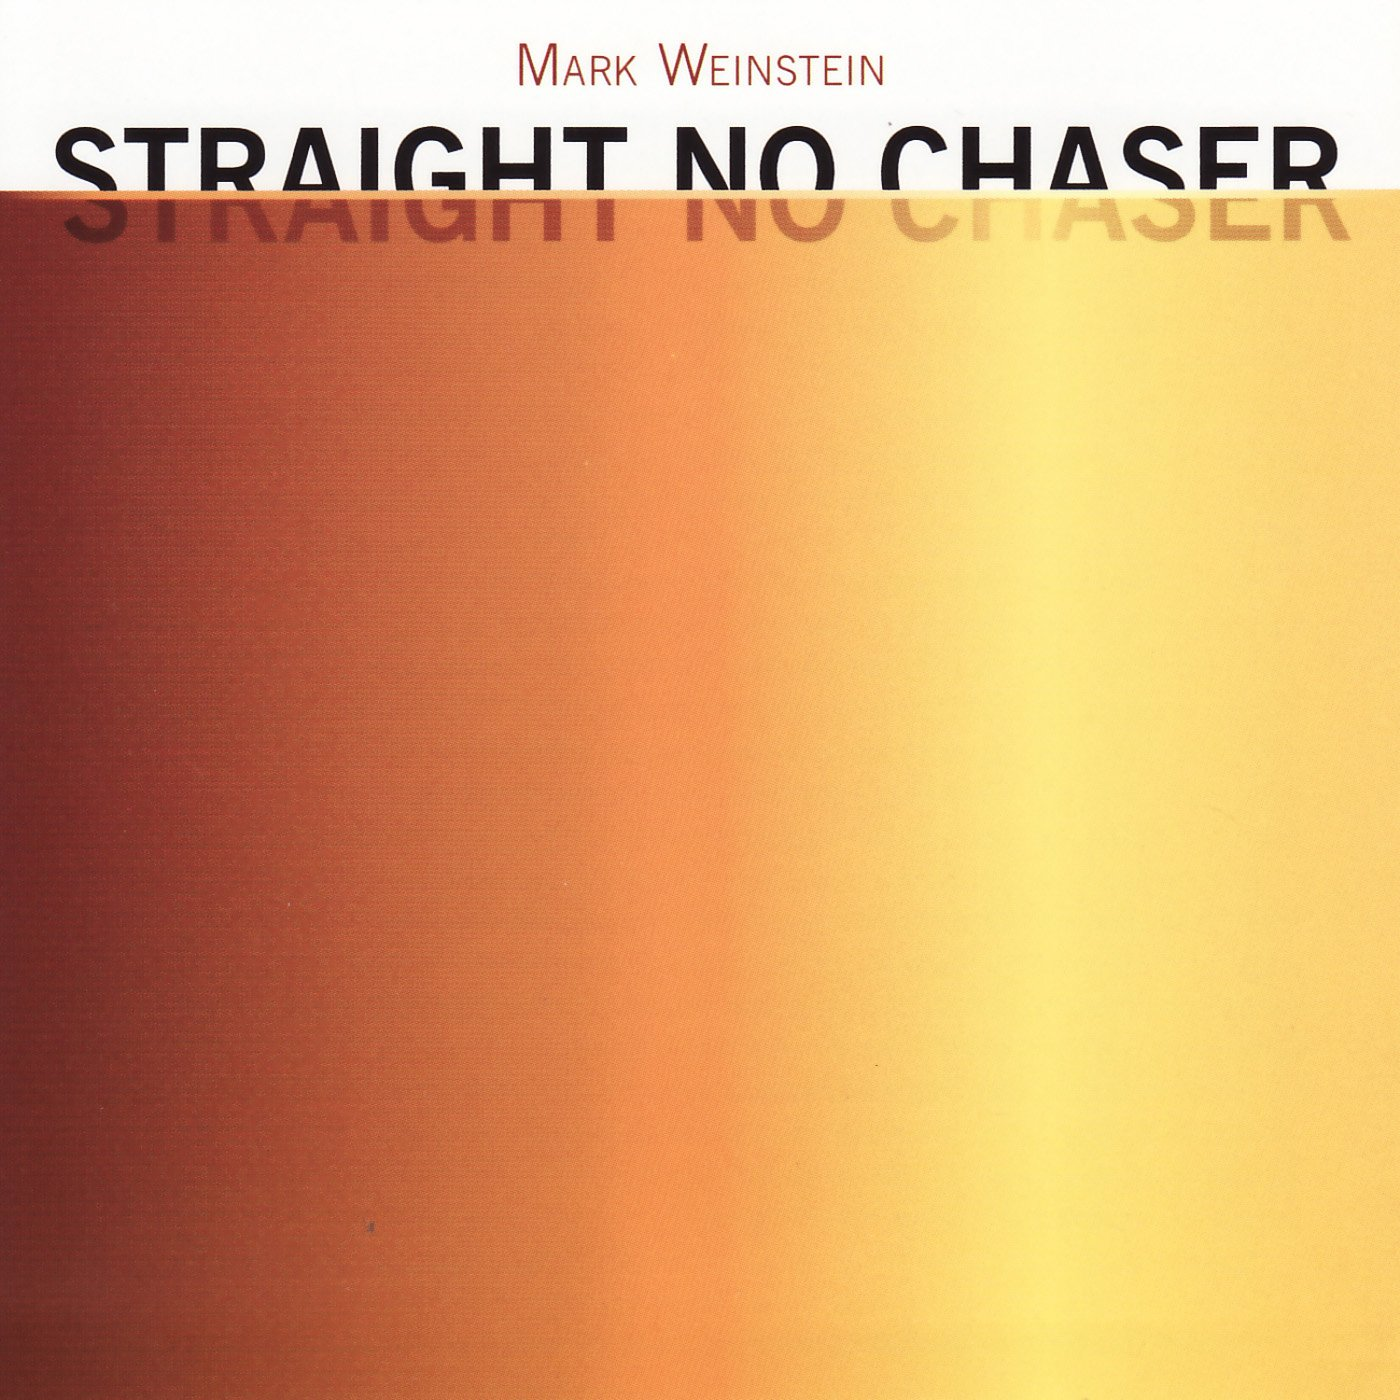 CD : Mark Weinstein - Straight No Chaser (CD)